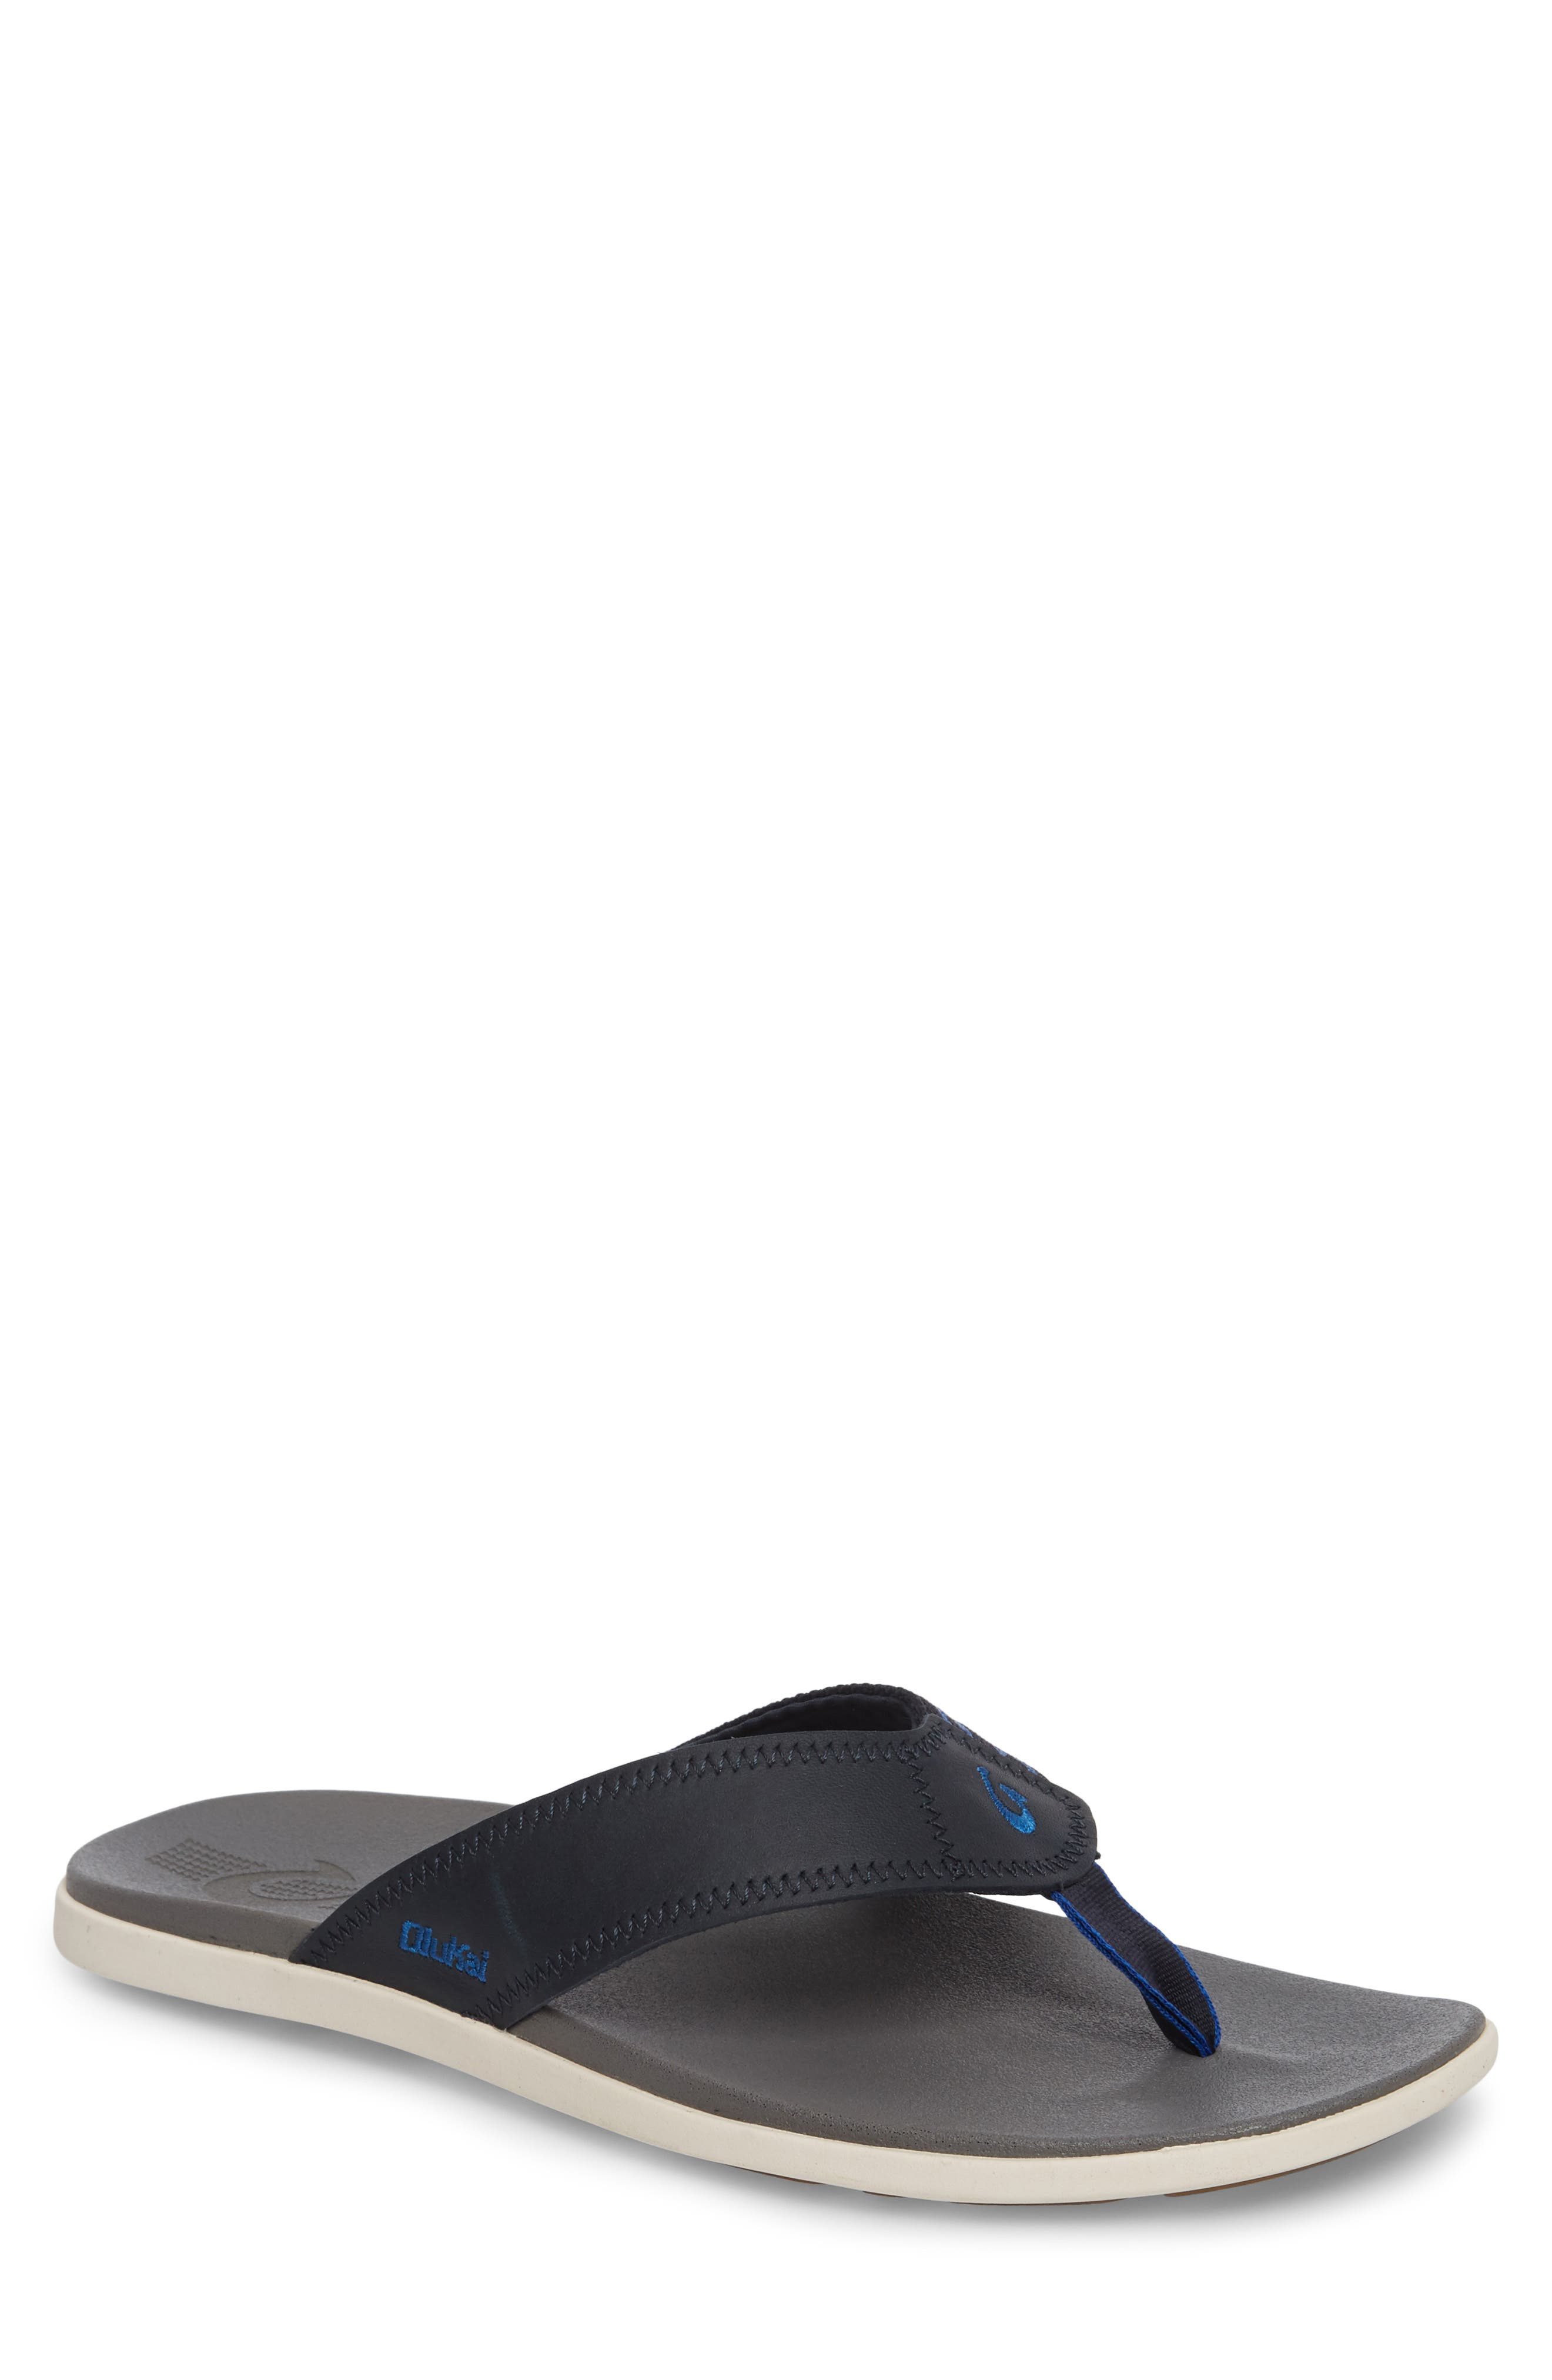 Kinona Flip Flop,                             Main thumbnail 1, color,                             Trench Blue/ Charcoal Leather